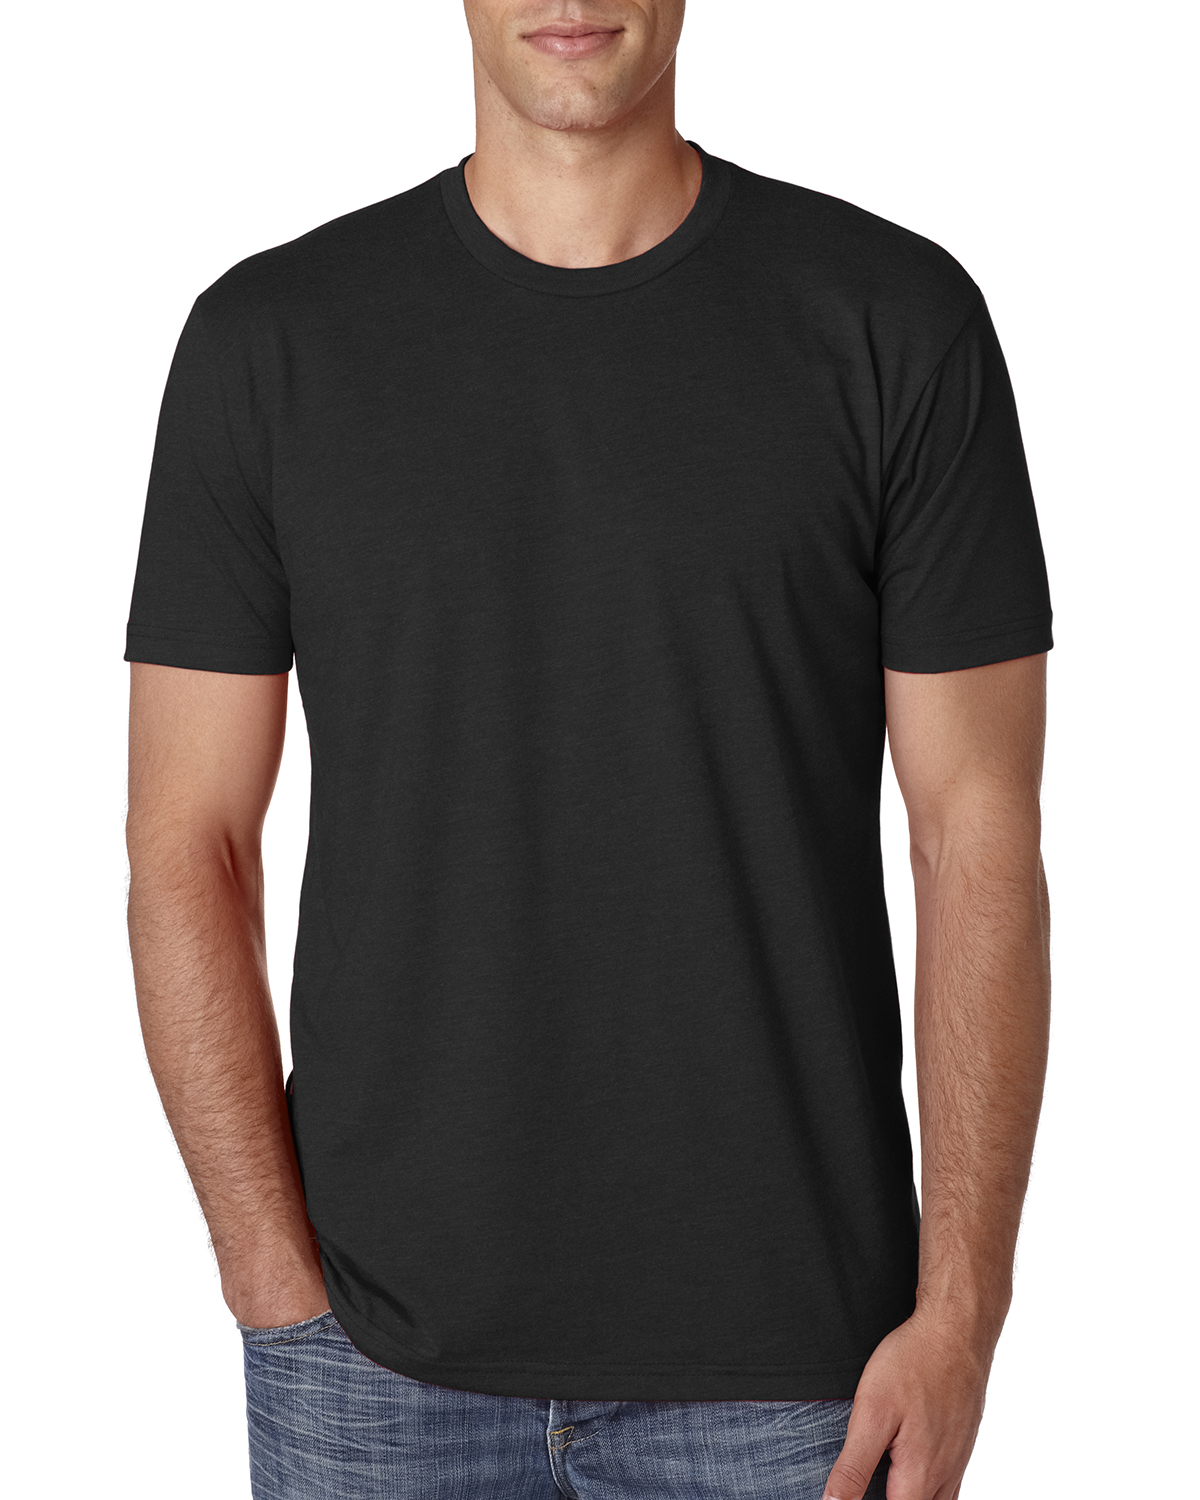 Next Level n6210 - The n6210 by Next Level is an affordable premium t-shirt with a modern fit, and extremely soft fabric blend. It's 60 %combed ringspun cotton & 40% polyester jersey, so shrinkage isn't as significant as with at 100% cotton shirt. The colors are slightly heathered, giving them a softer vintage look. They also feature tearaway labels in the neck, so removing them for tag printing is an option. Try putting your design on one, check out all of the colors available,or get an easy online quote here.